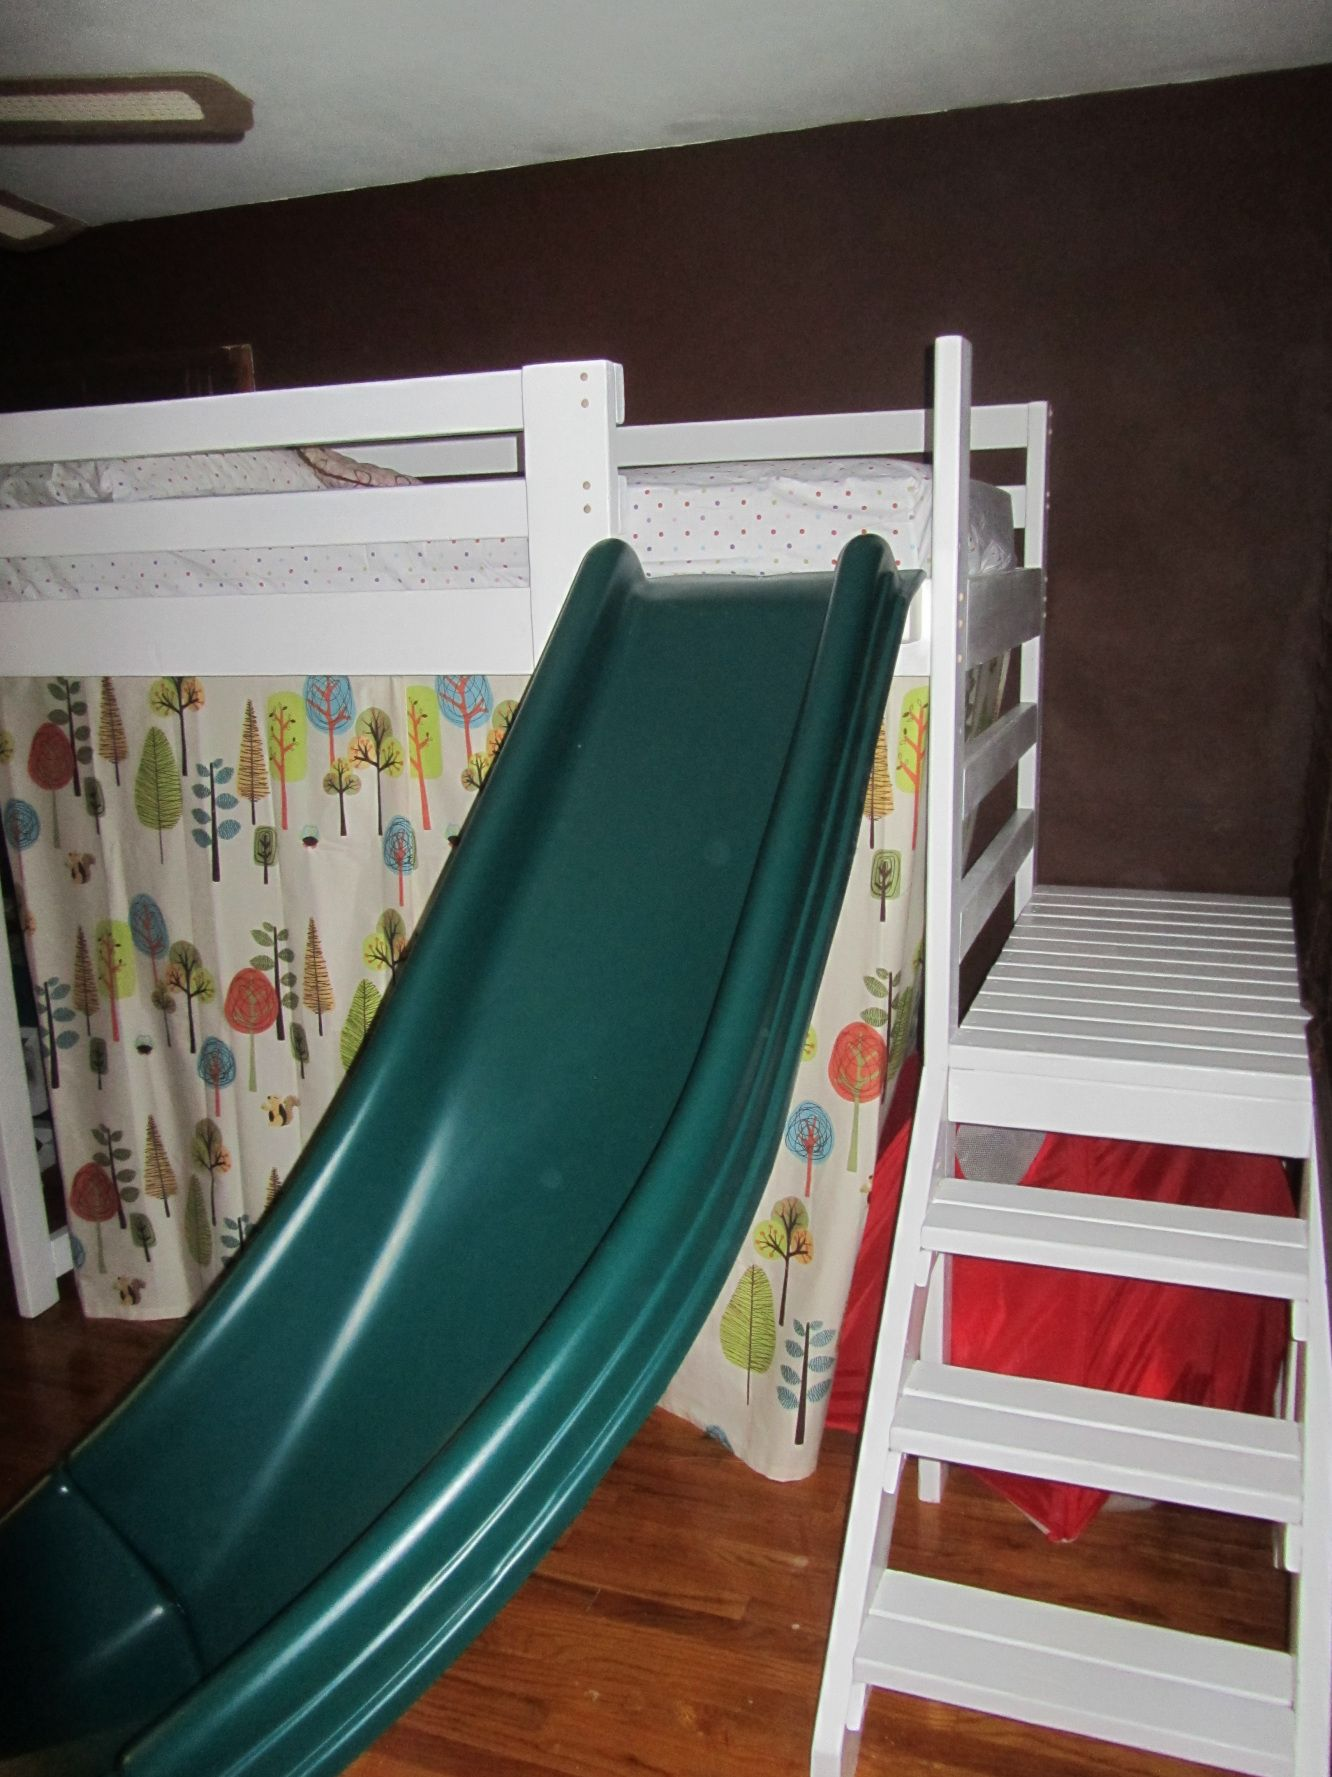 Pin By Neby On Bedroom Apartments Ideas Pinterest Bunk Beds With